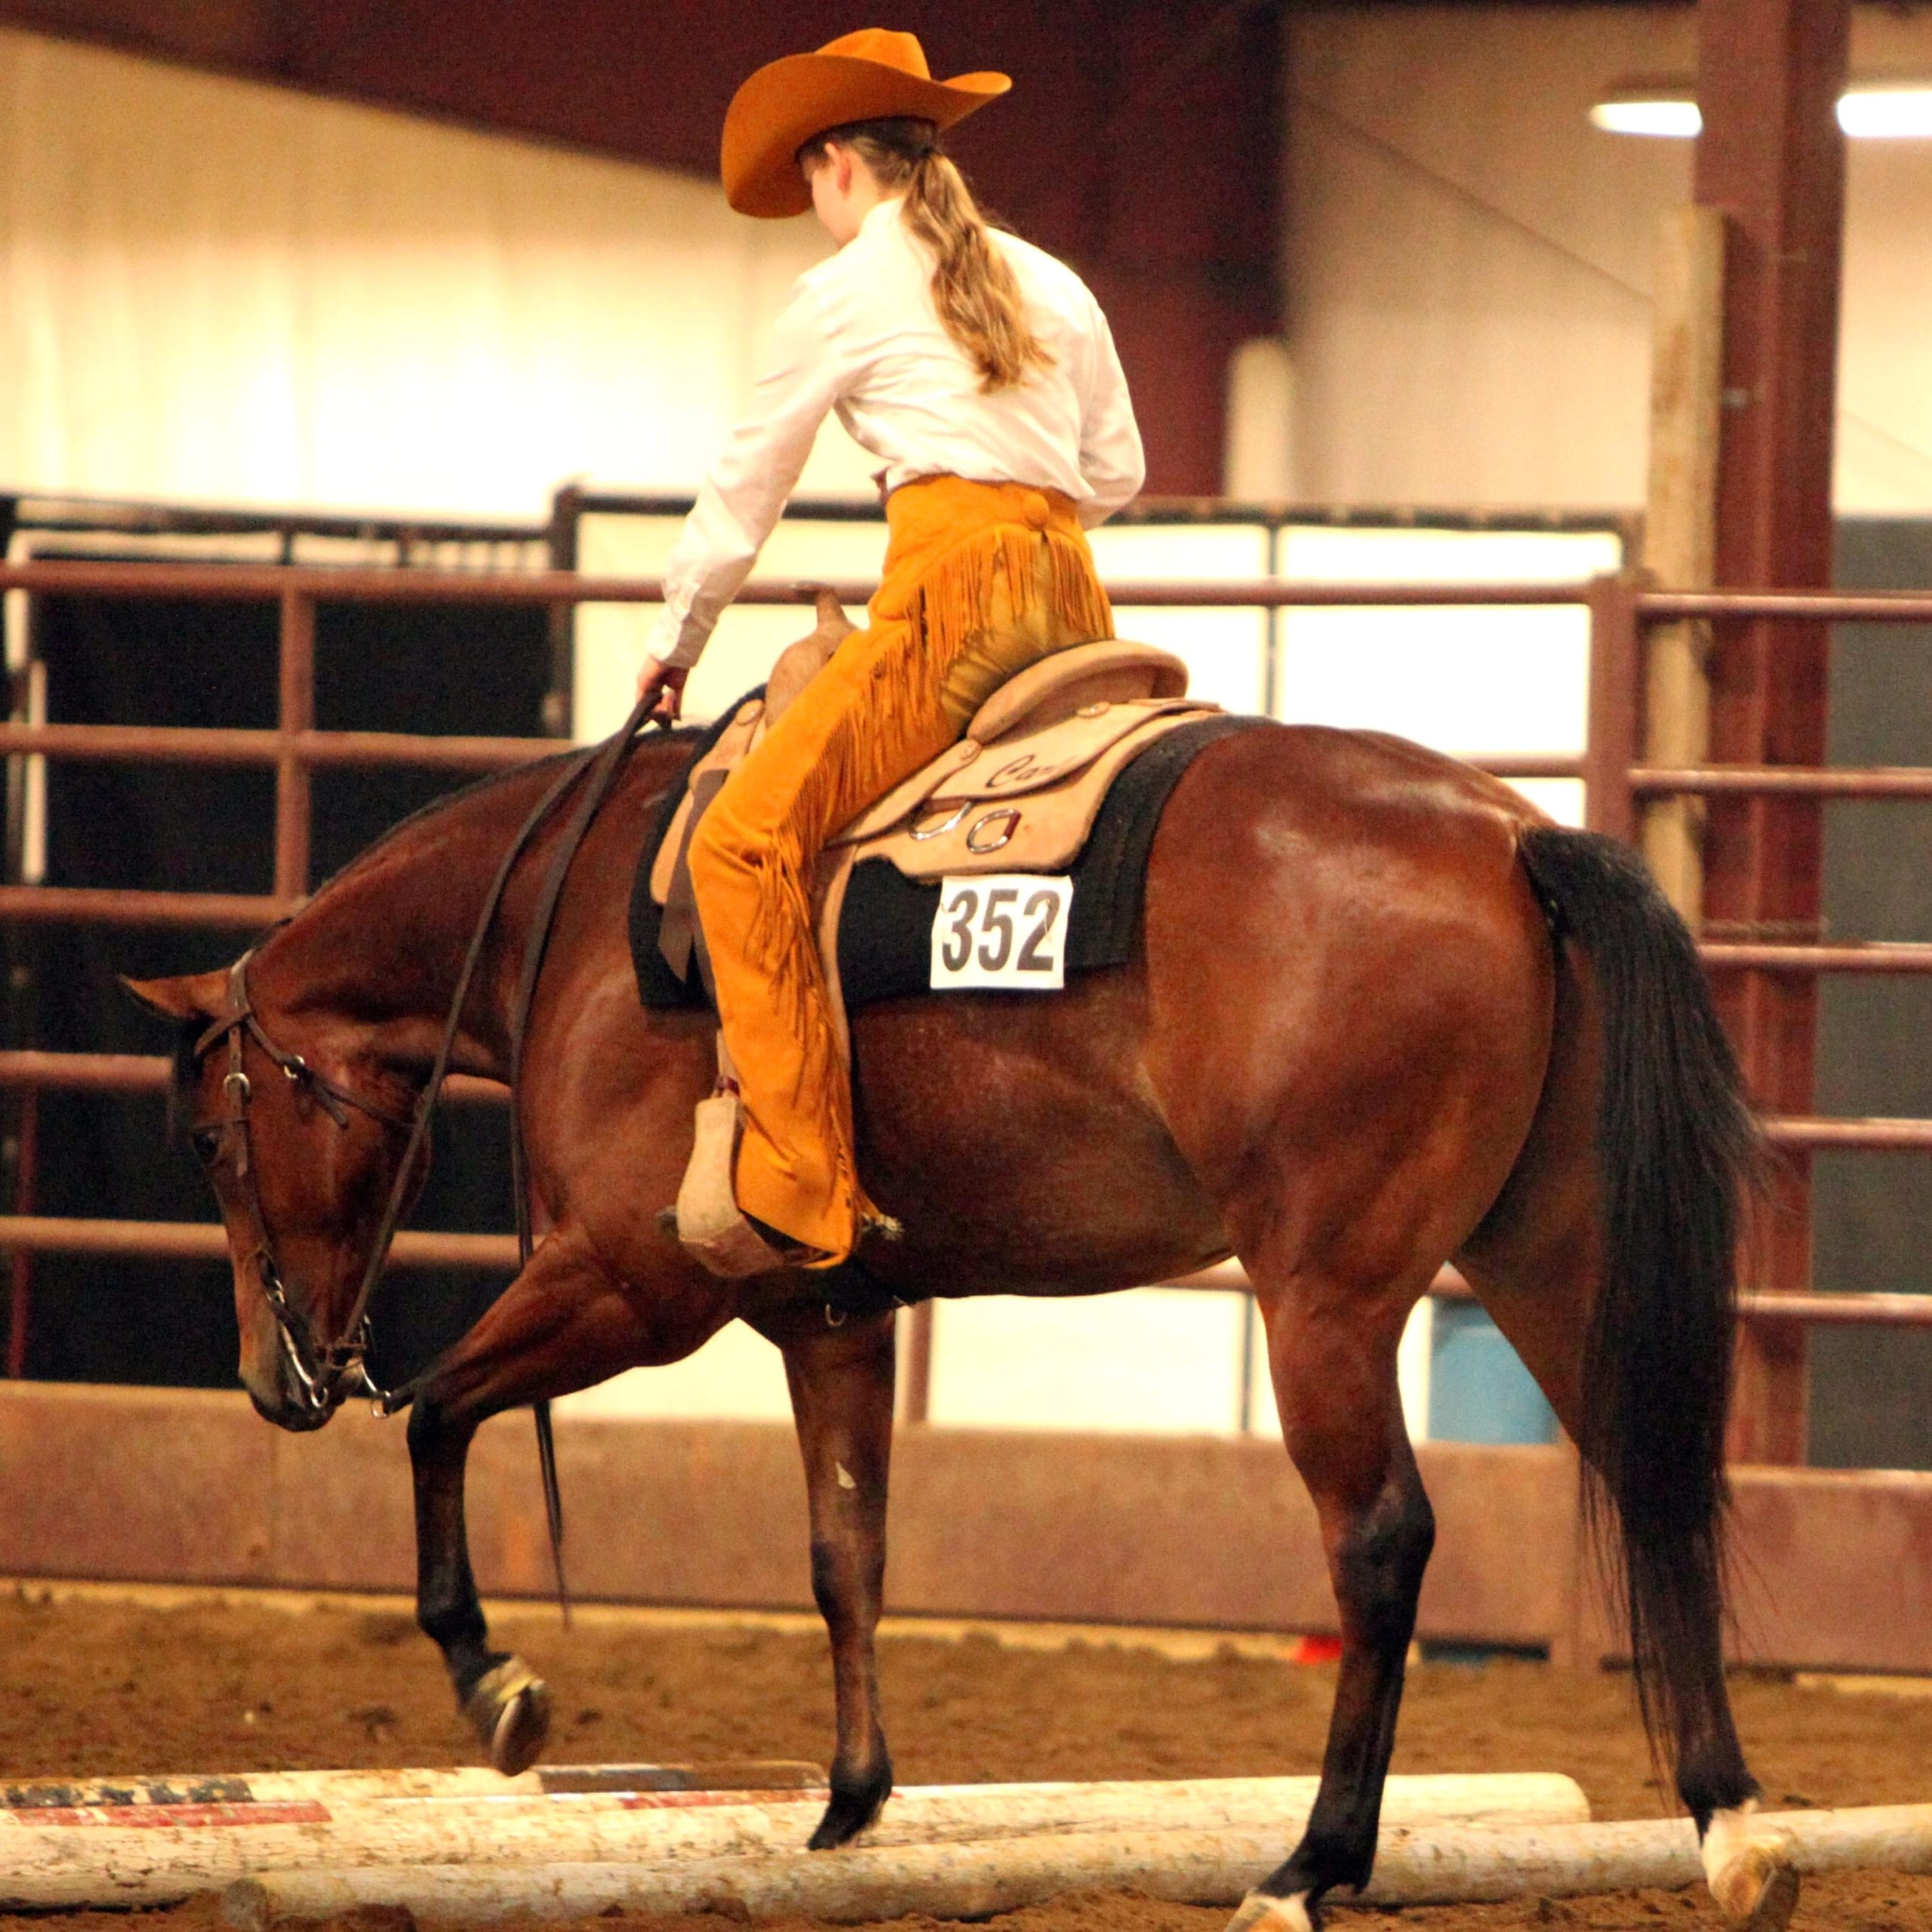 Gohorseshow Ranch Riding Does Style And Breeding Matter Gohorseshow